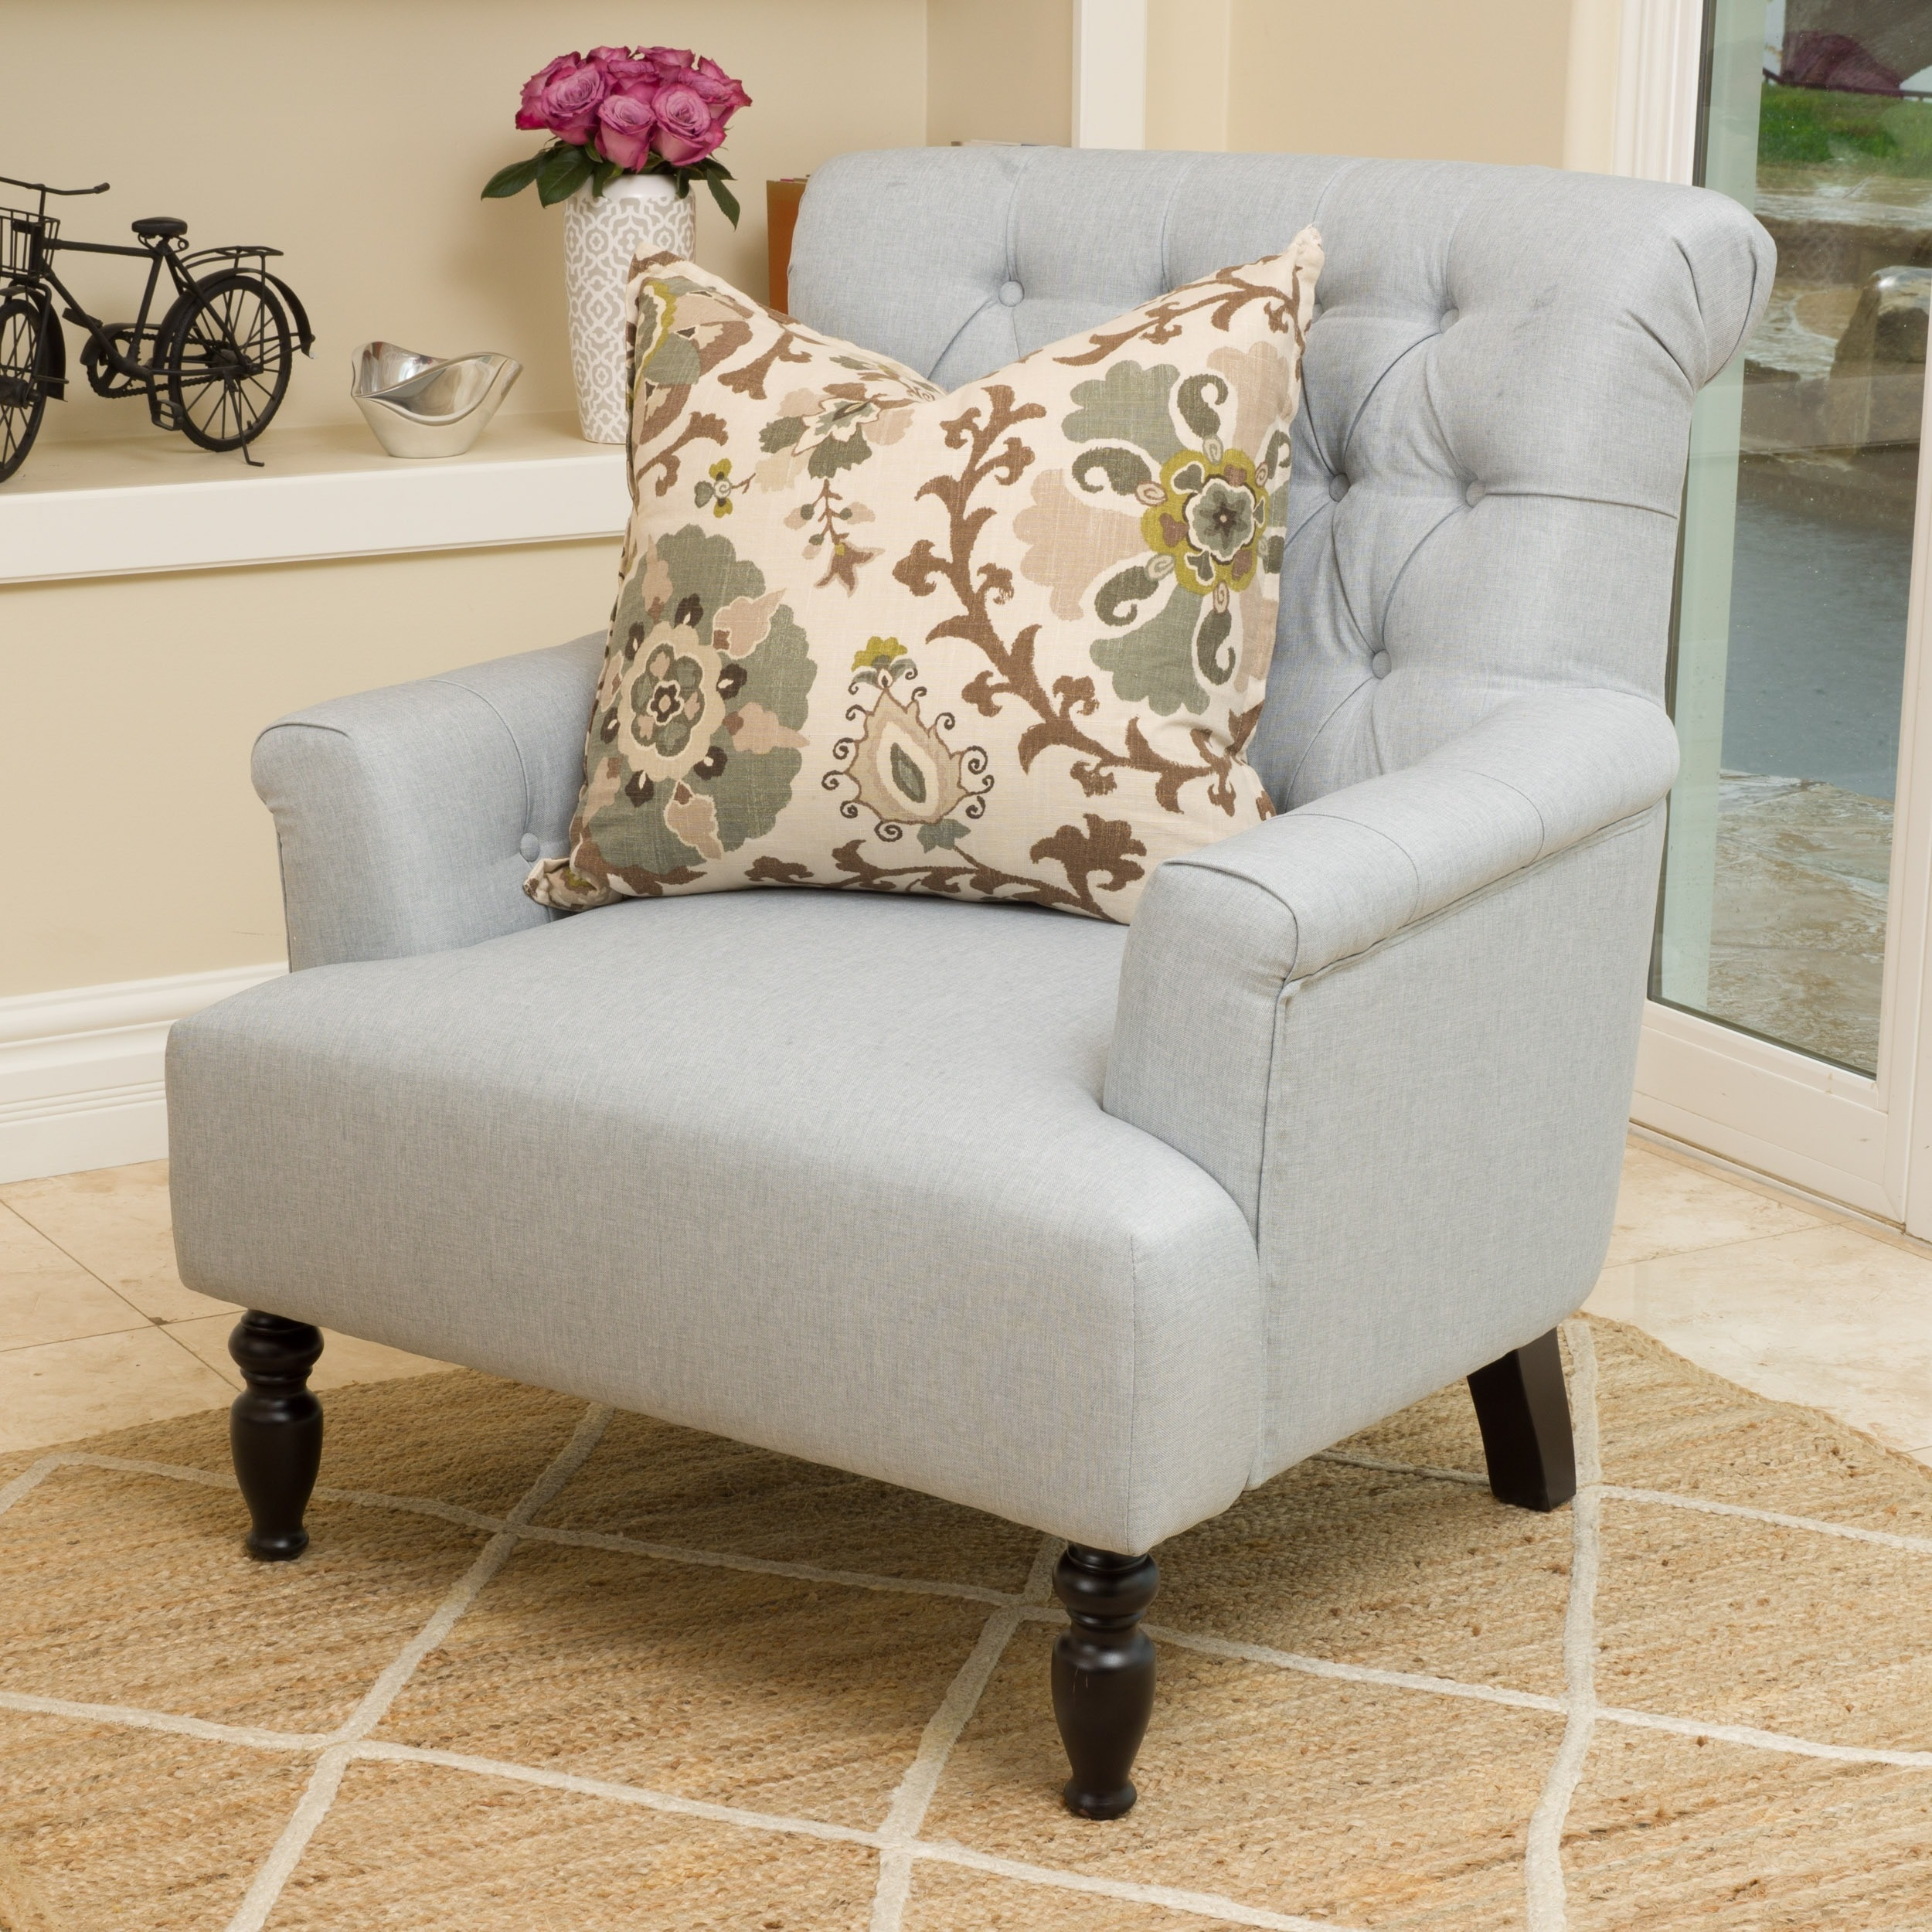 fabric club chair bernstein fabric club chair by christopher knight home ebay 15176 | Christopher Knight Home Bernstein Fabric Club Chair 441278a0 ff91 4281 91a8 e077336b9317